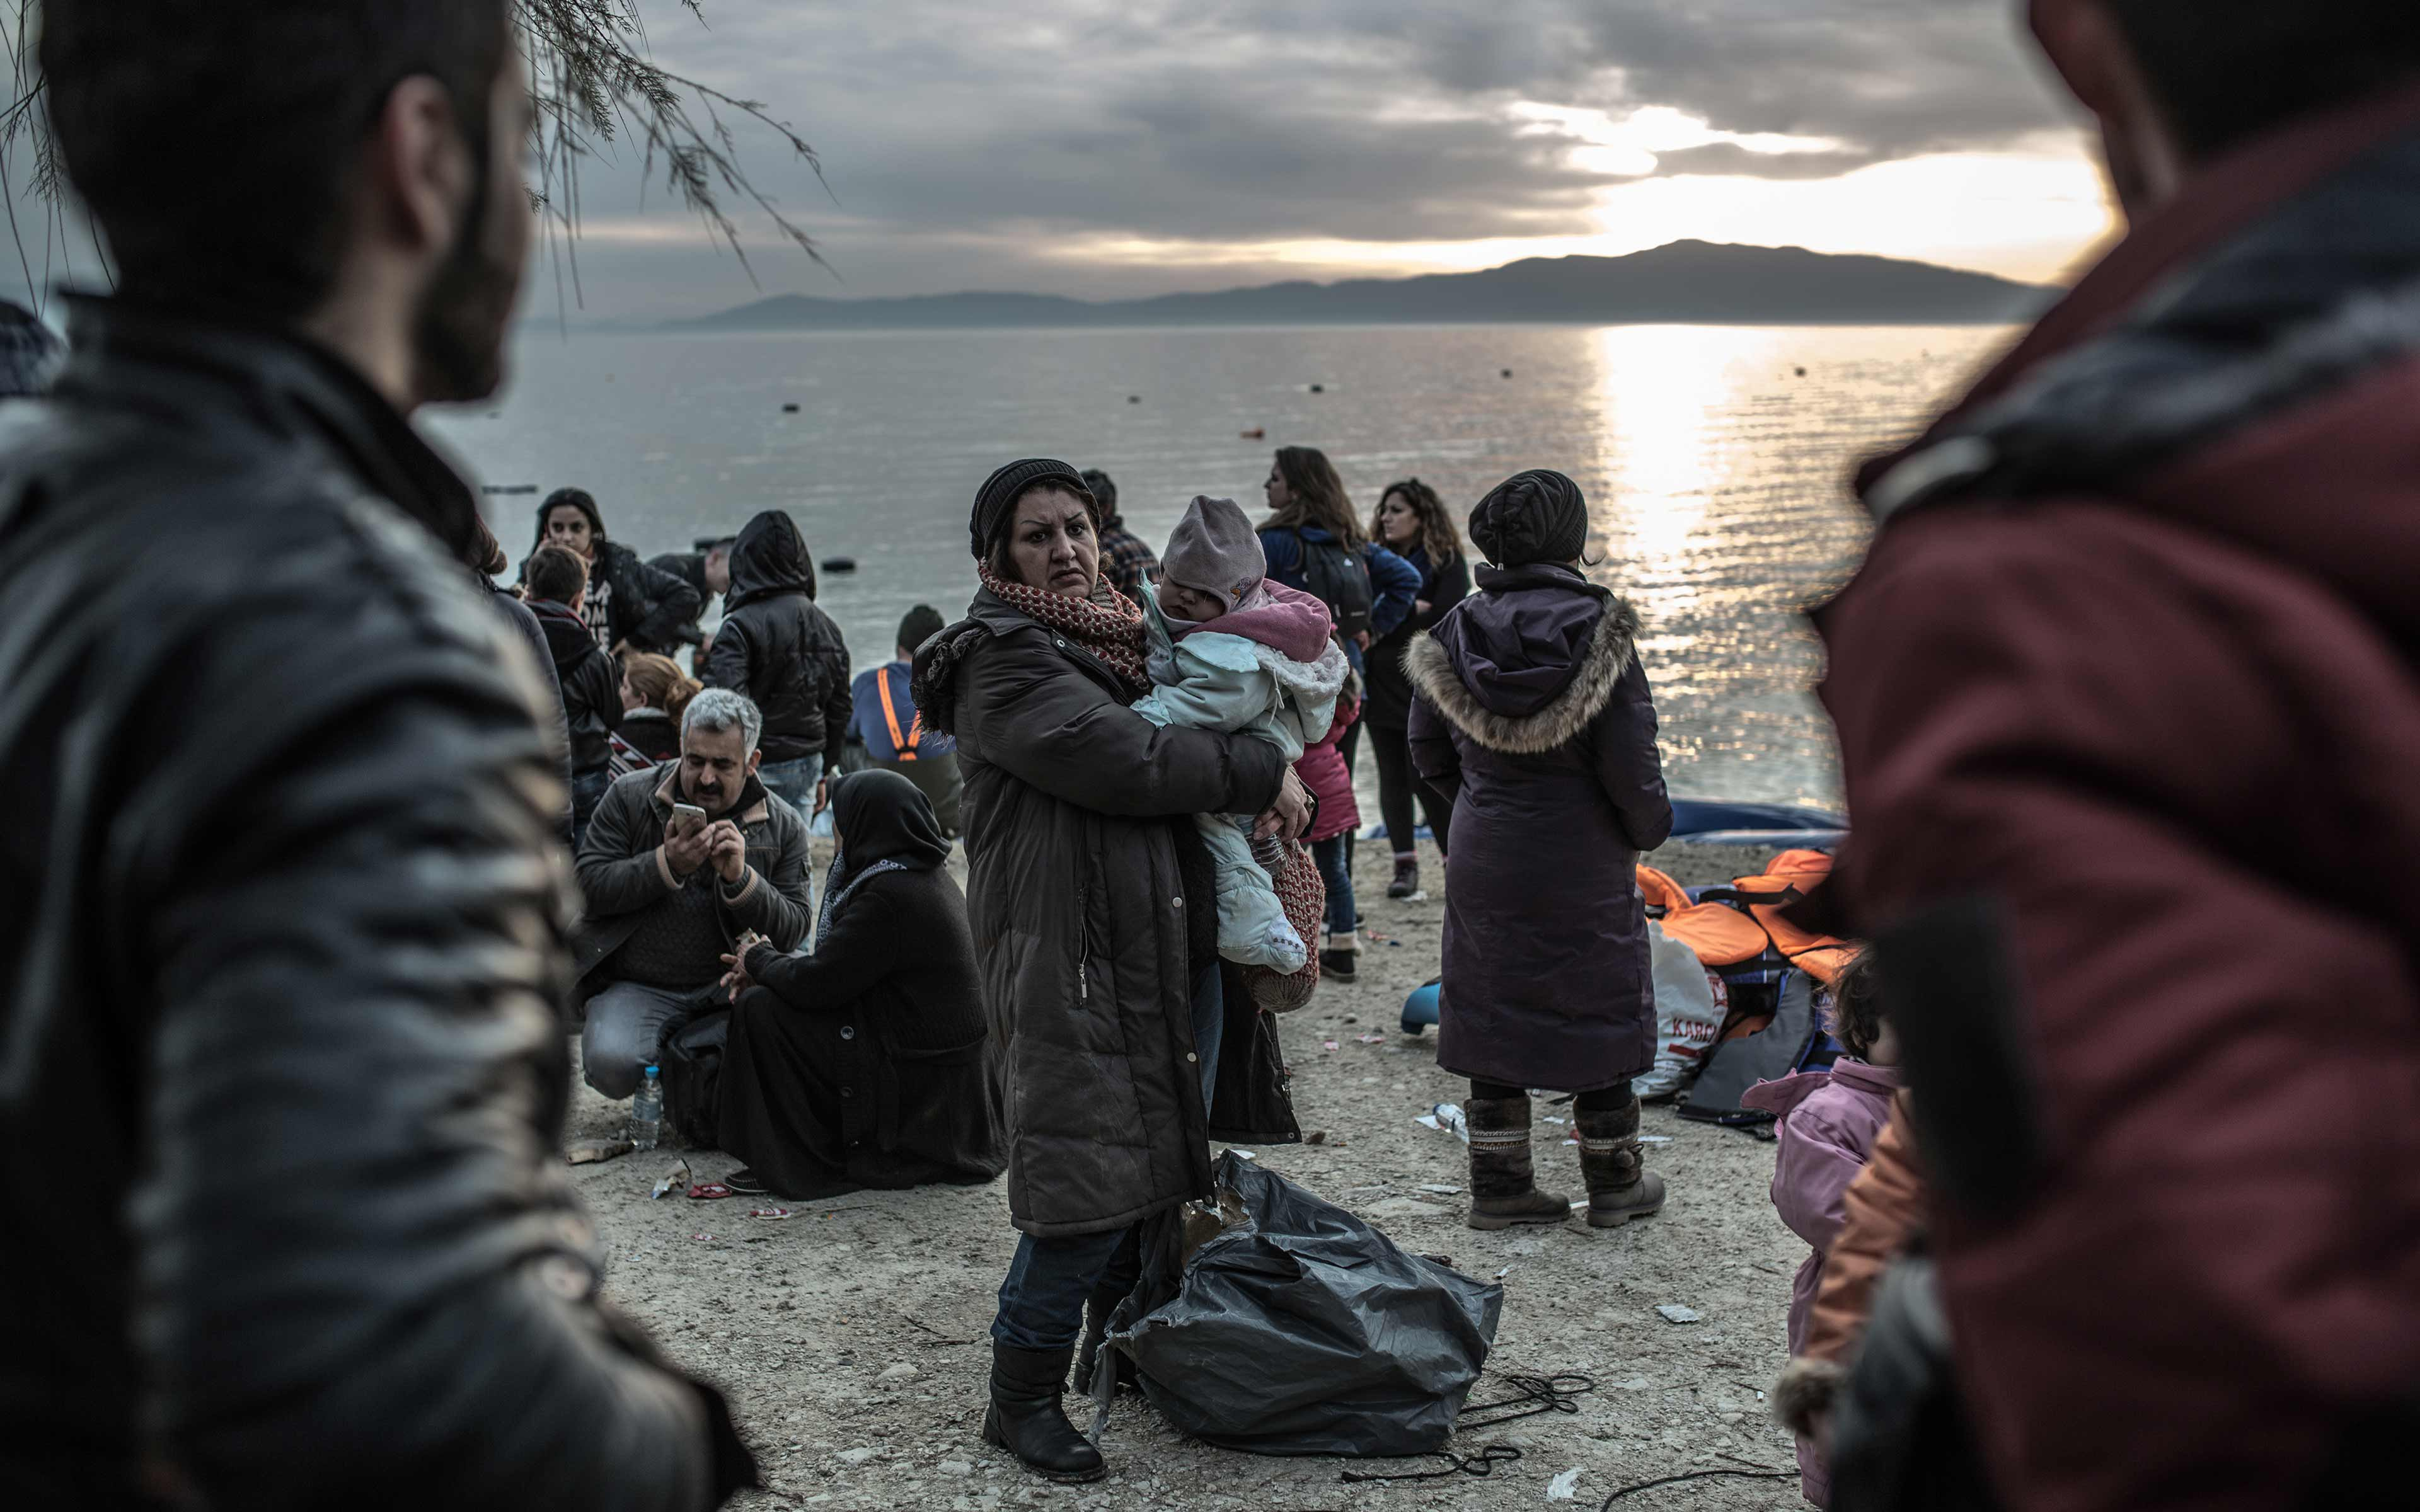 Safe on shore, refugees who made it to the Greek island of Lesbos in February 2016 plan for the next step of their long trek to safety. Already many have endured a harrowing journey, paying traffickers up to 1,000 Euros per person for the passage.